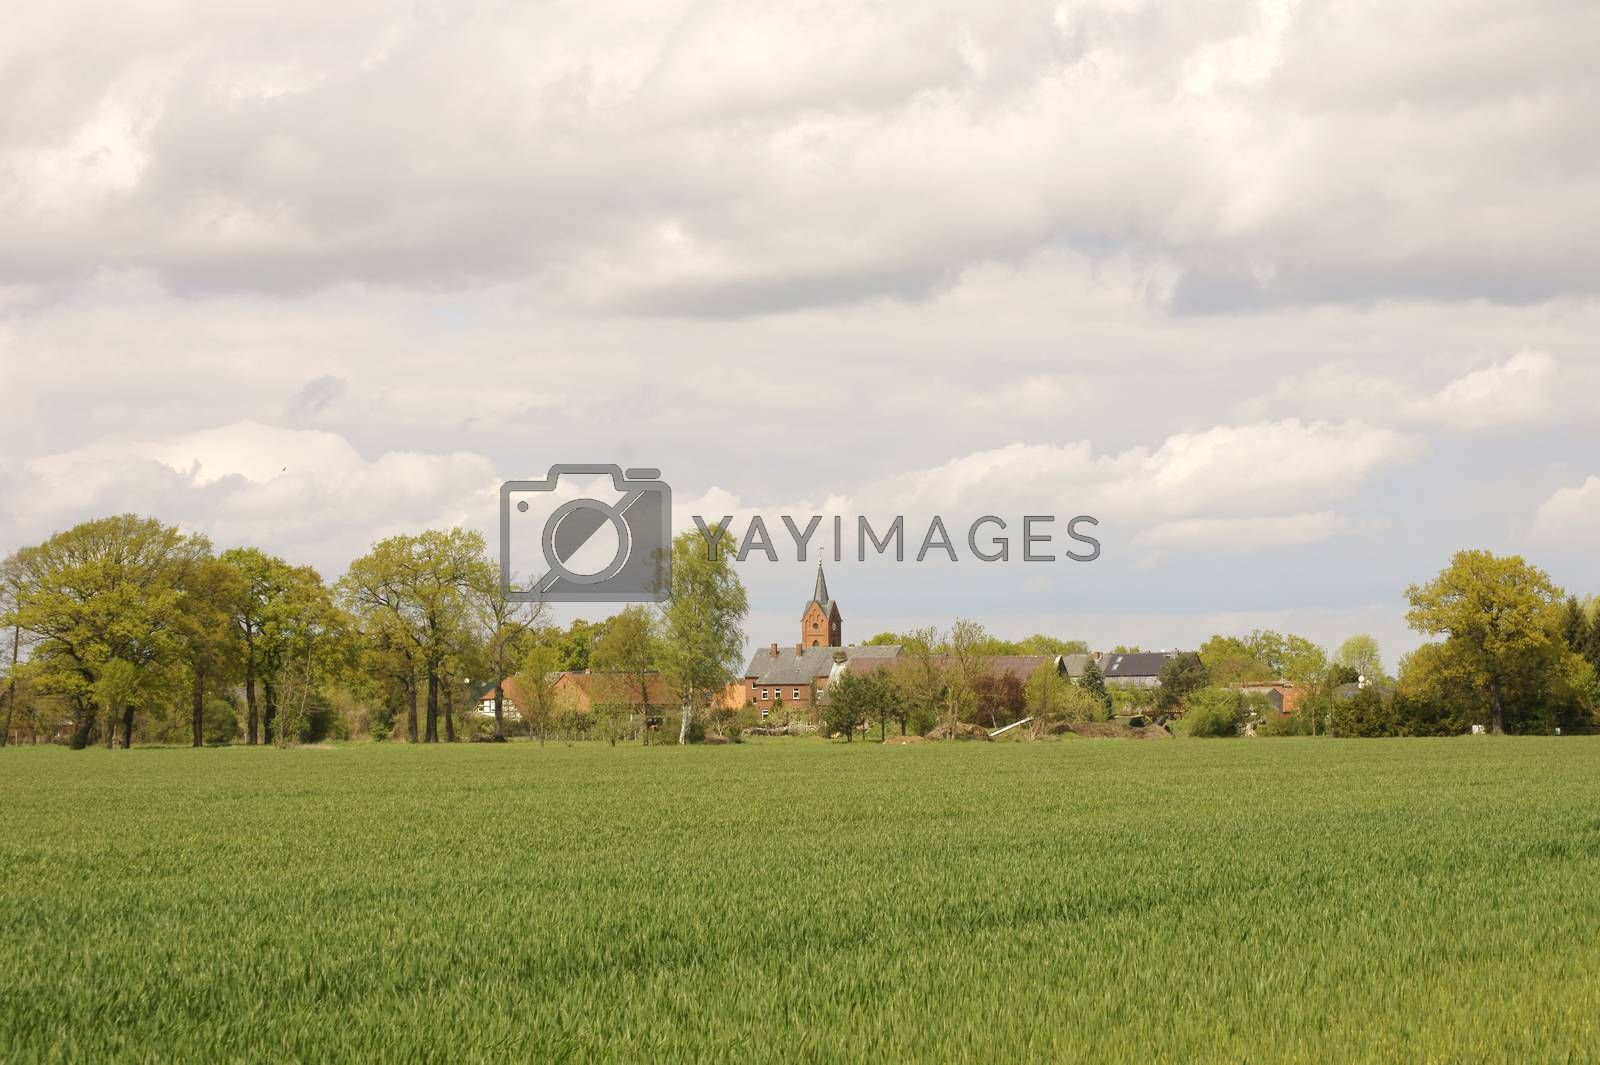 A village with a church and farms in the distance behind a row of trees and fields.